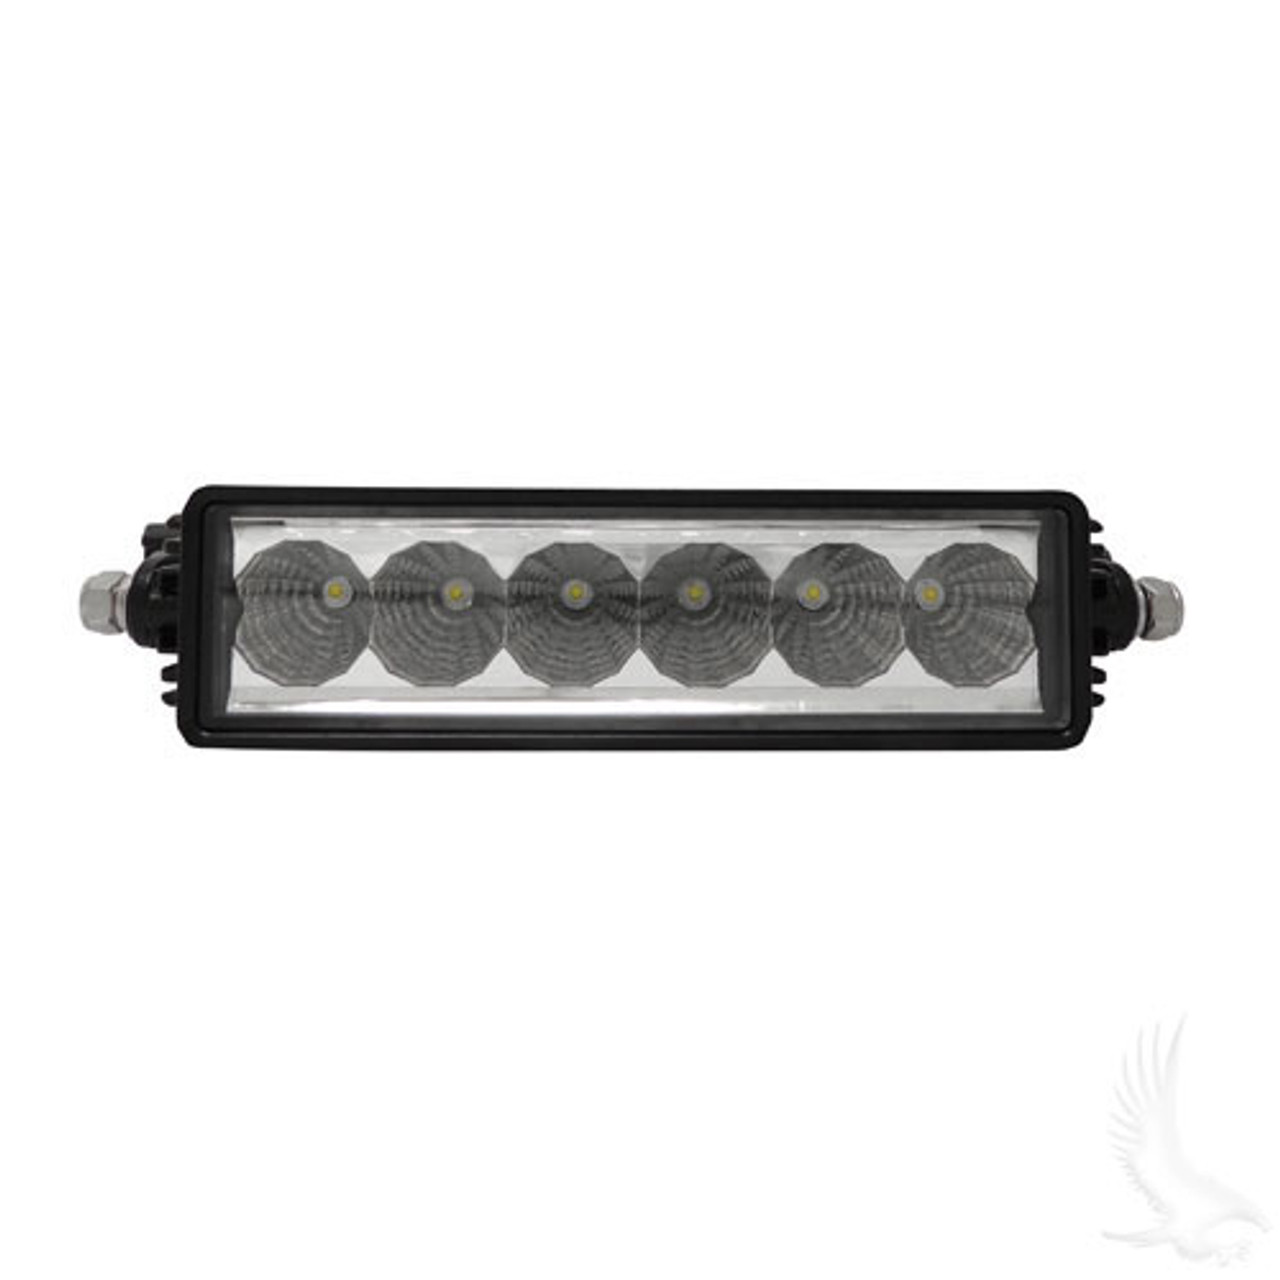 "Utility Spotlight, LED, 7.75"" 12V-24V 18W 1350 Lumen"